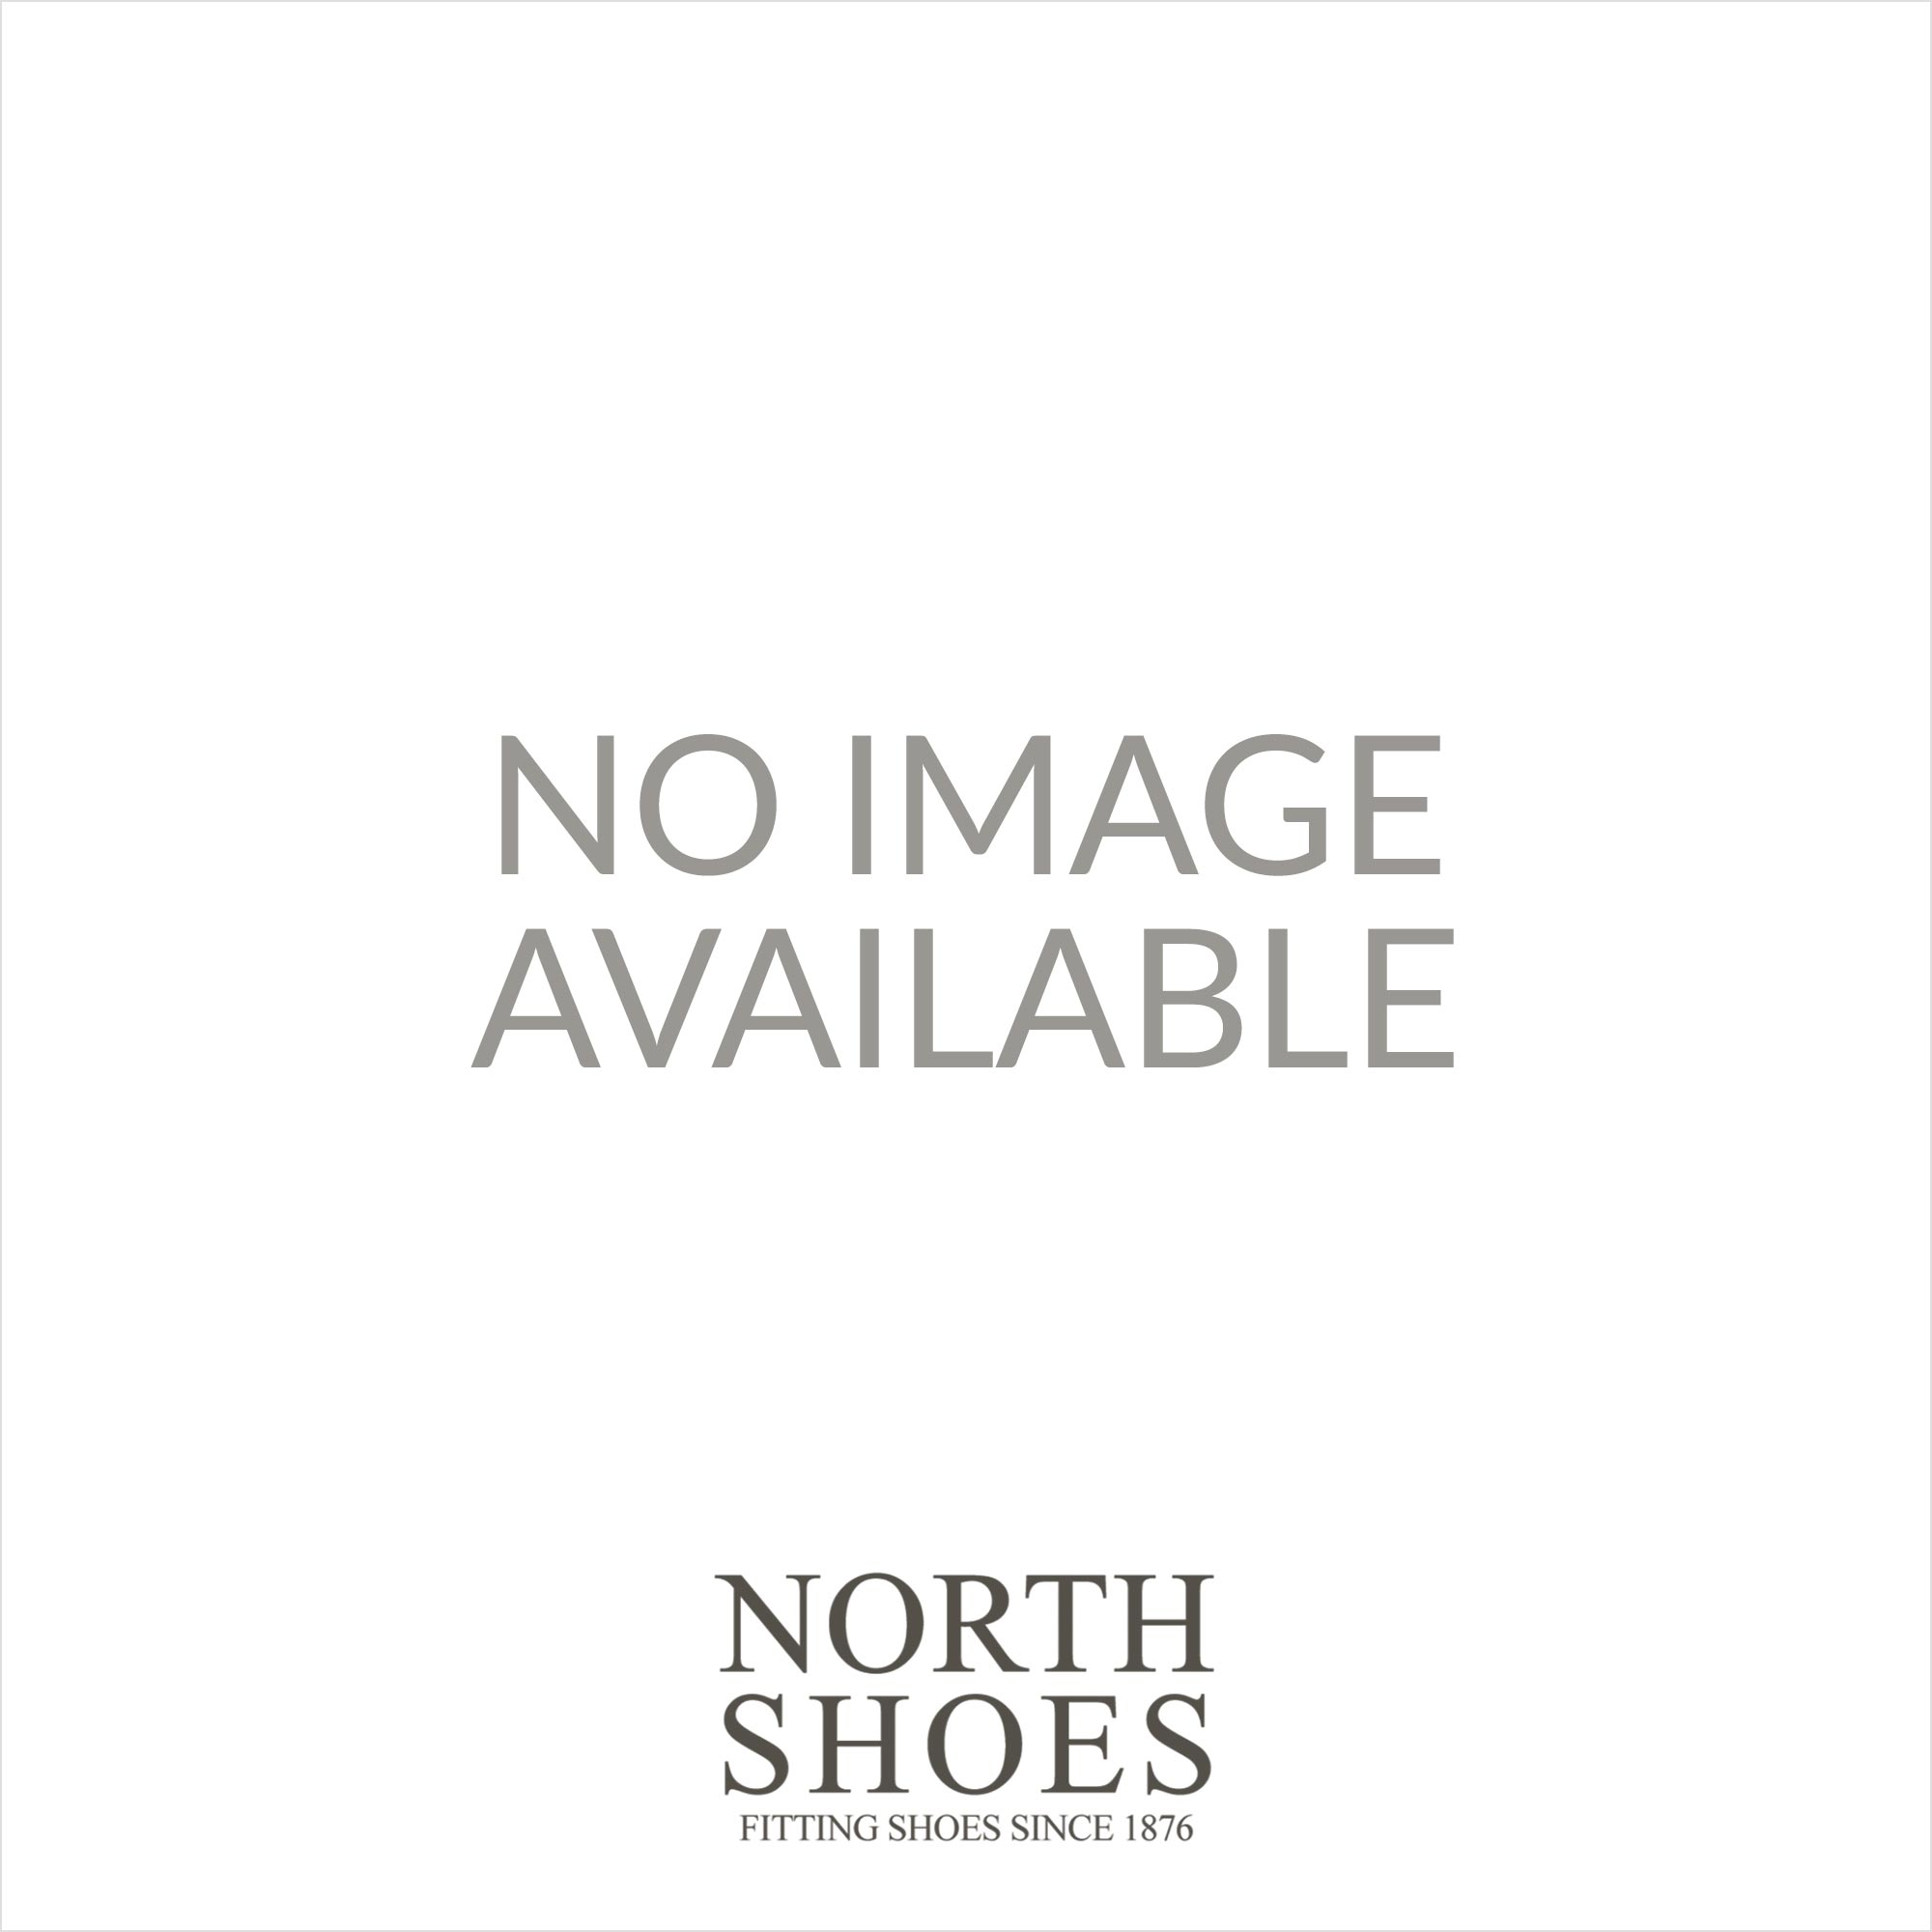 ddc382ccfc05 Rieker 608P9-12 Navy Womens T Bar Slip On Mule Sandal - Rieker from North  Shoes UK